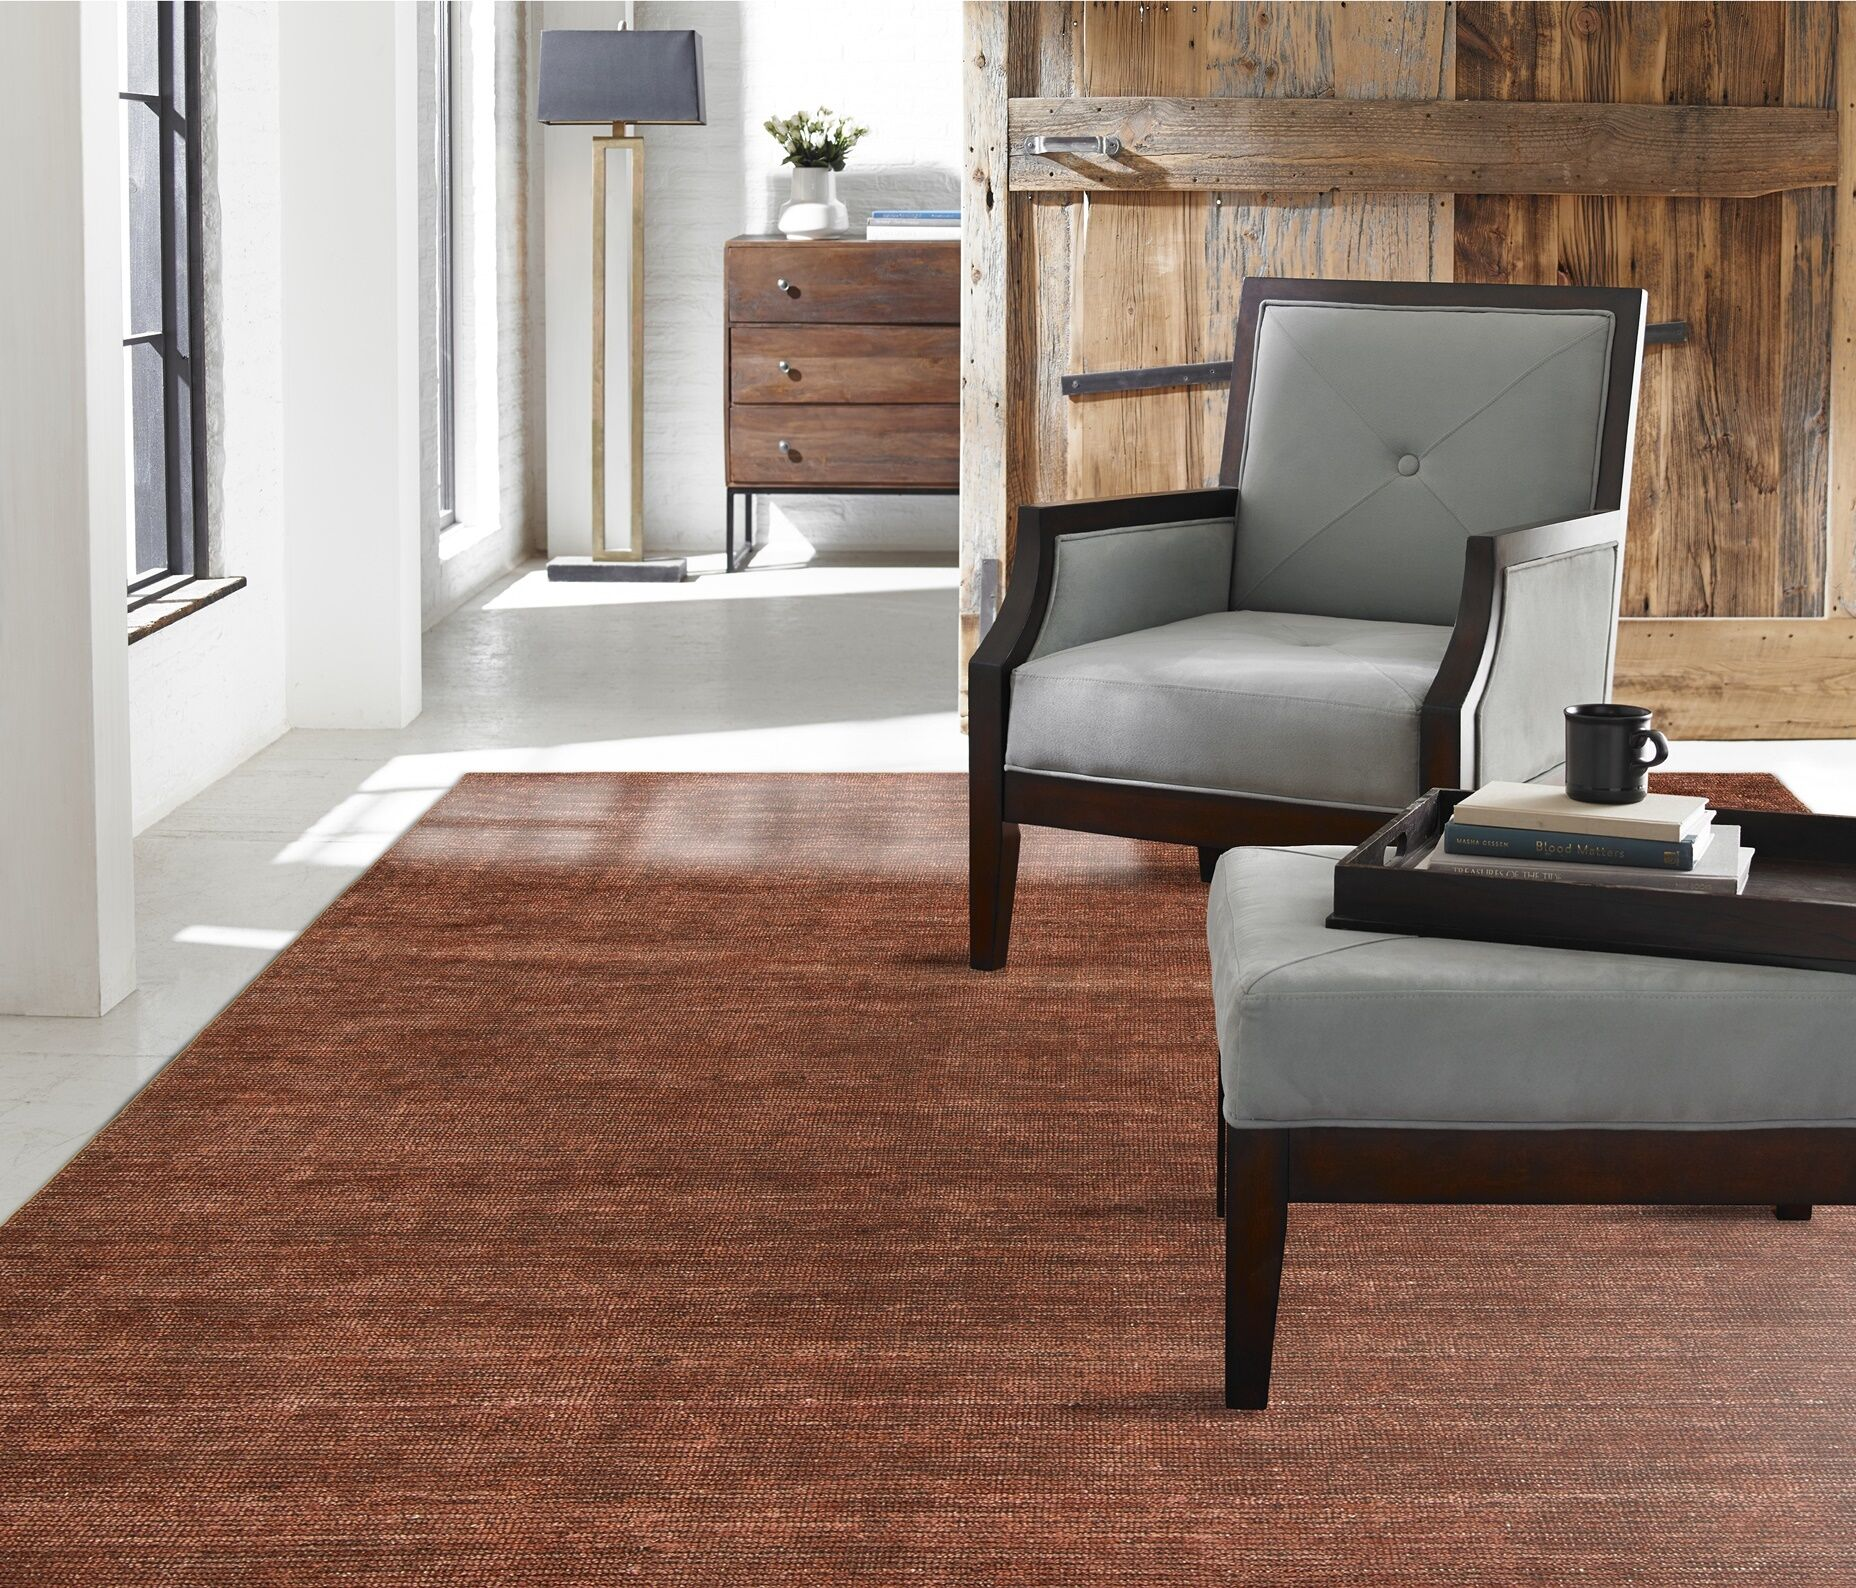 Chelsie Allspice Hand-Woven Rust Area Rug Rug Size: 5'6